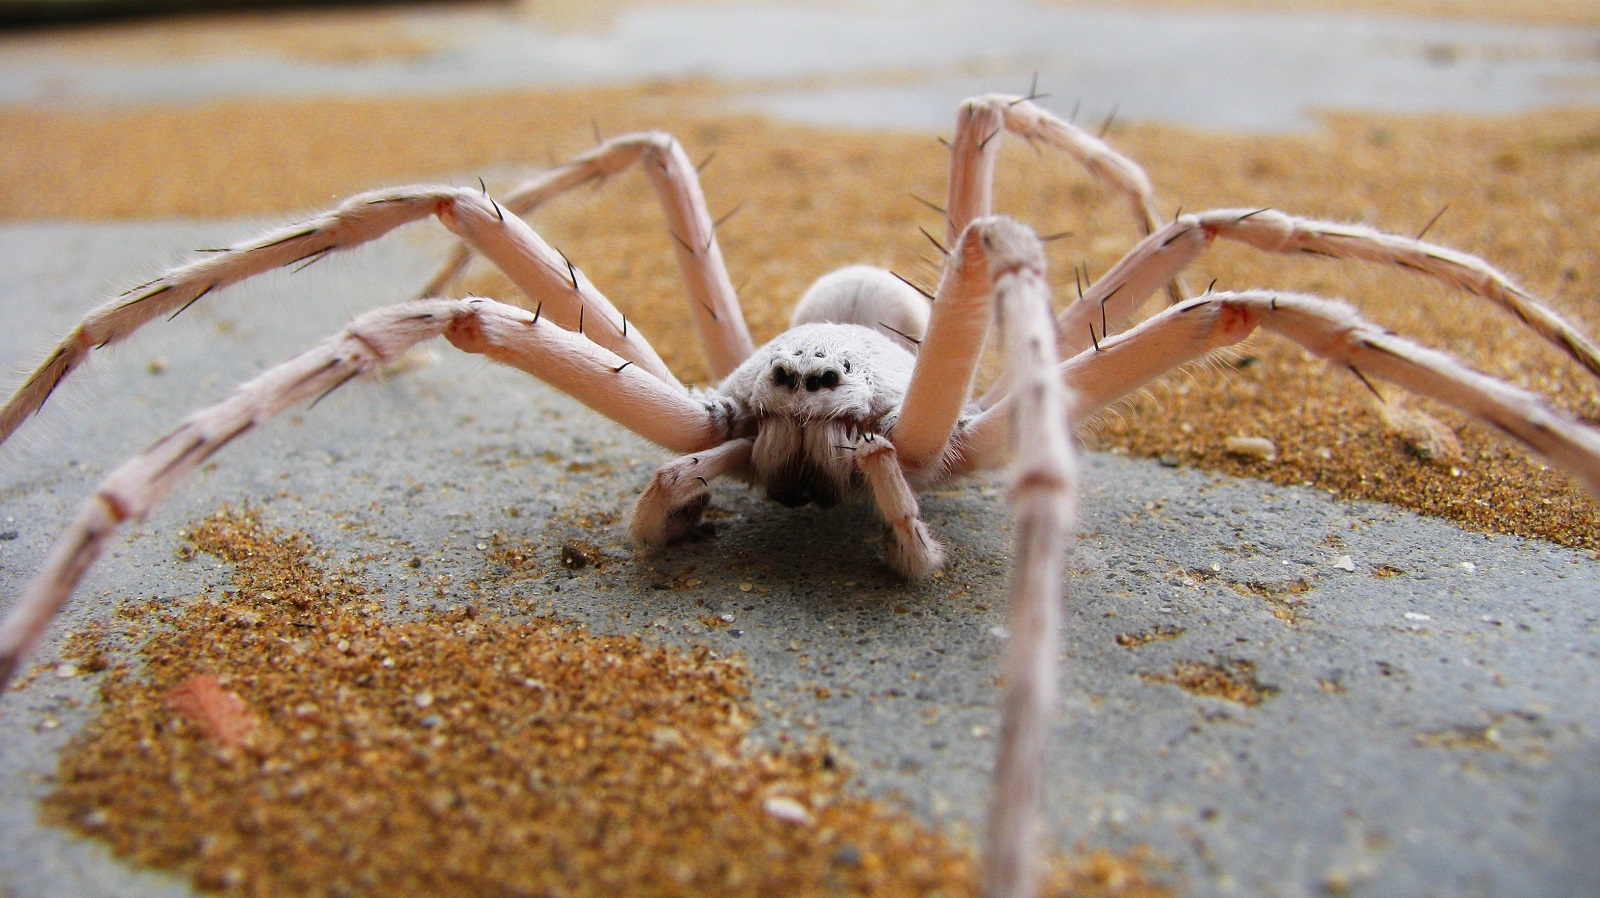 Real Monstrosities: Dancing White Lady Spider